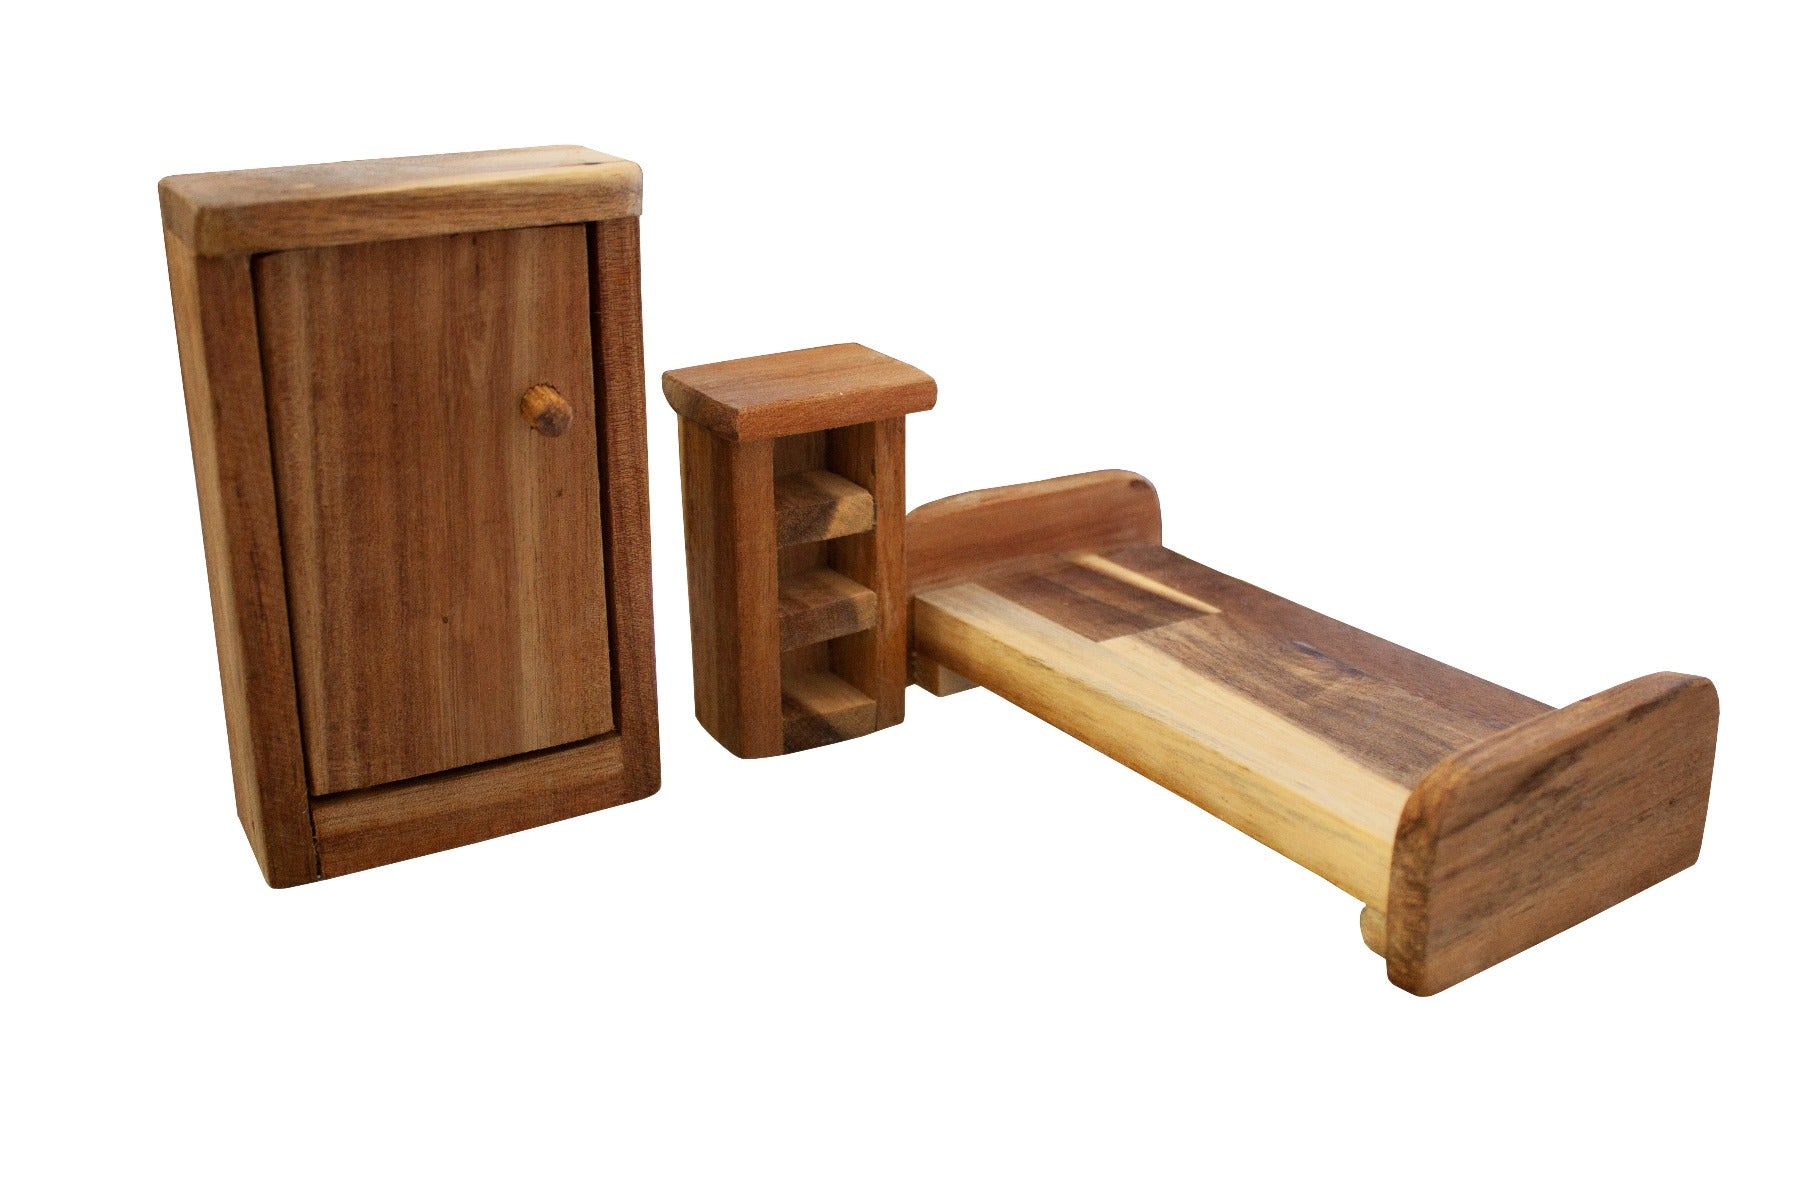 Wooden Dolls House Furniture - Set of 3 Pieces